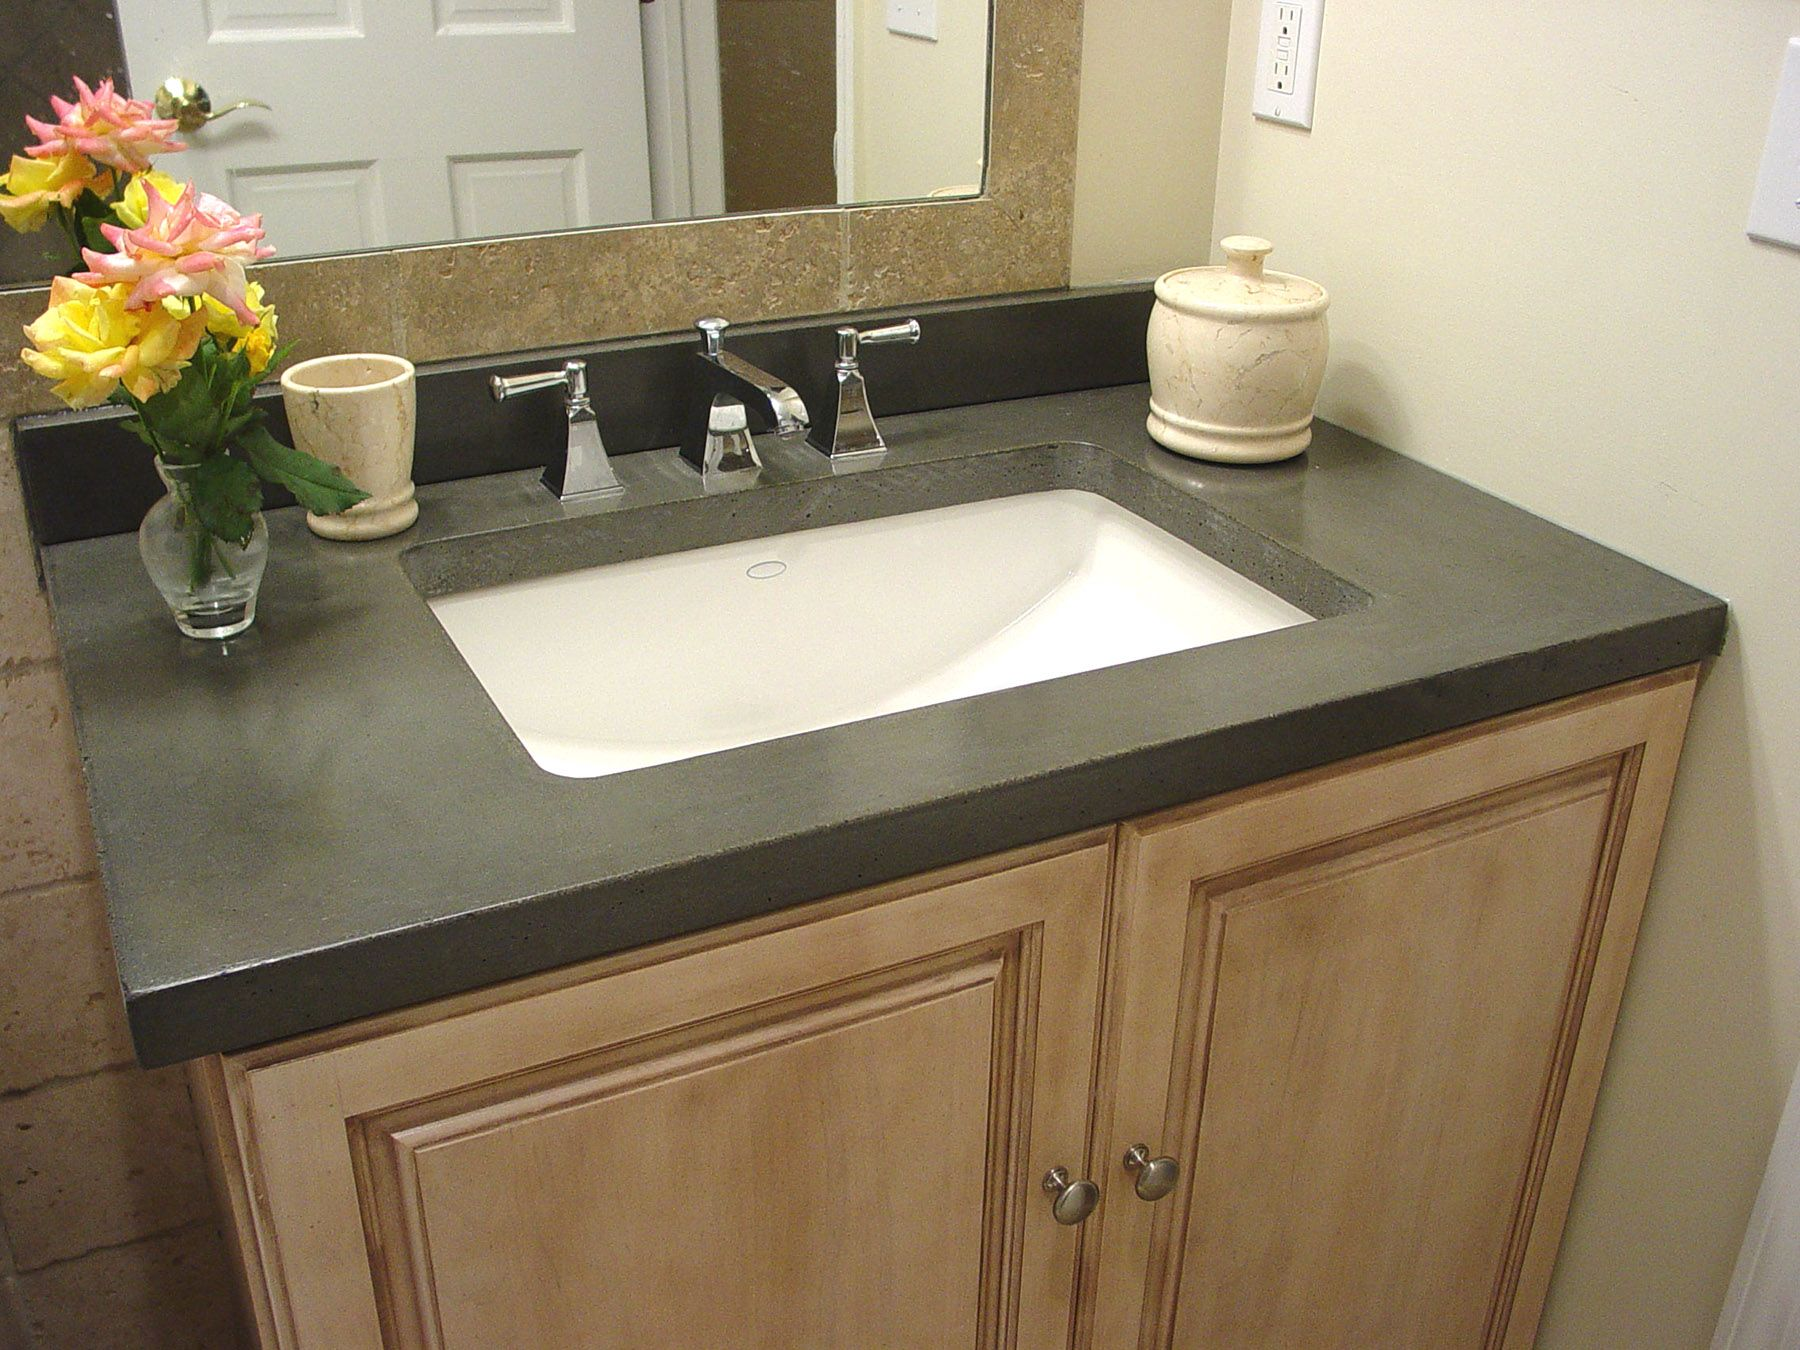 Concrete countertops show features how to build concrete countertops by concrete encounter